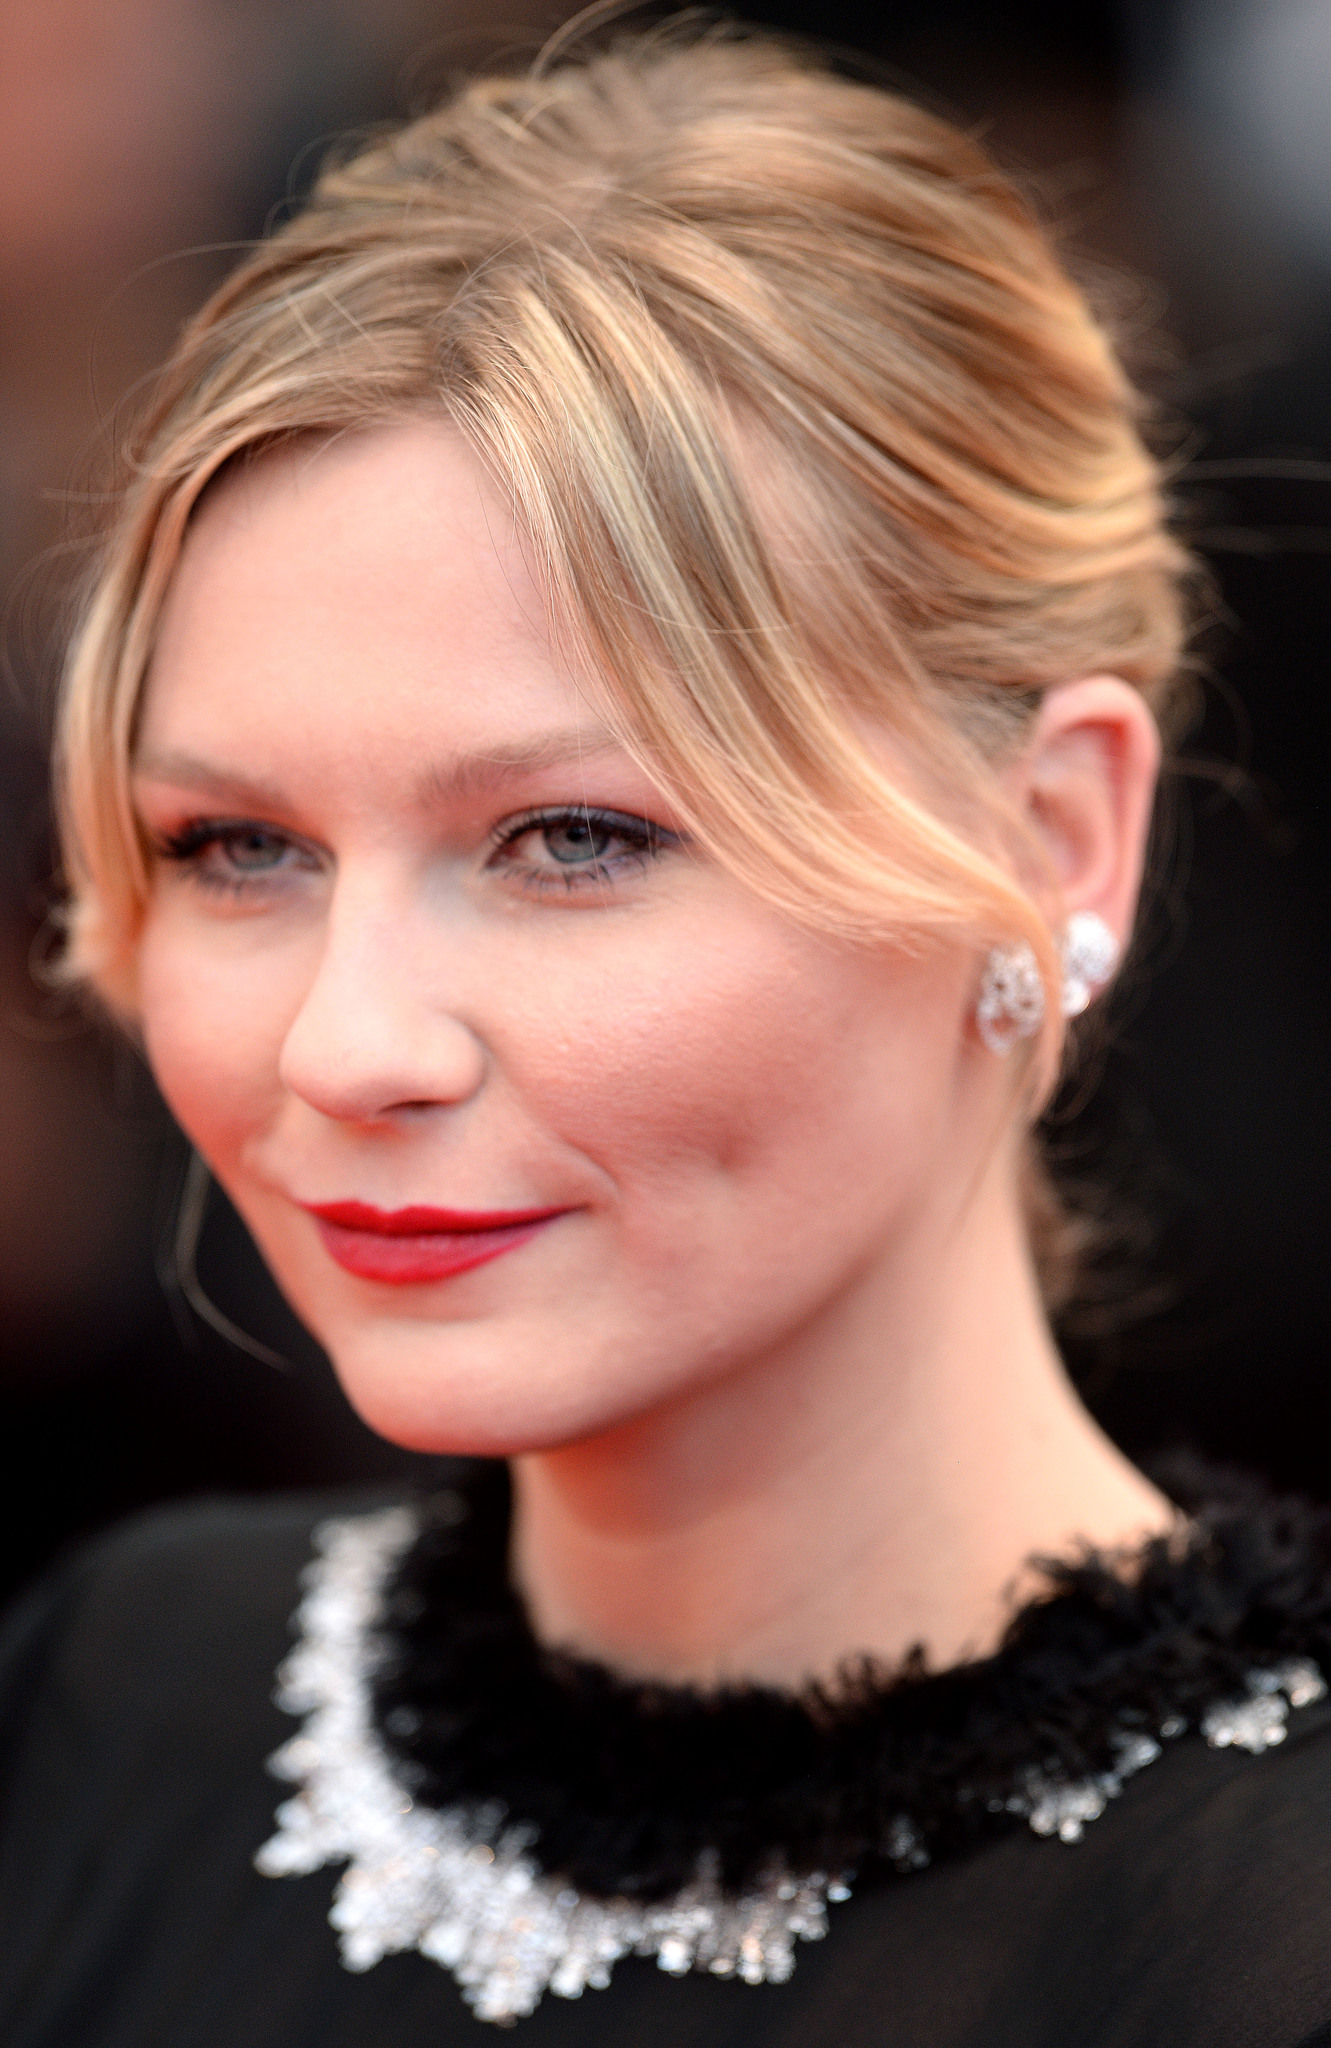 Kirsten Dunst Actress SpiderMan Kirsten Caroline Dunst is an American actress who also holds German citizenship She was born on April 30 1982 in